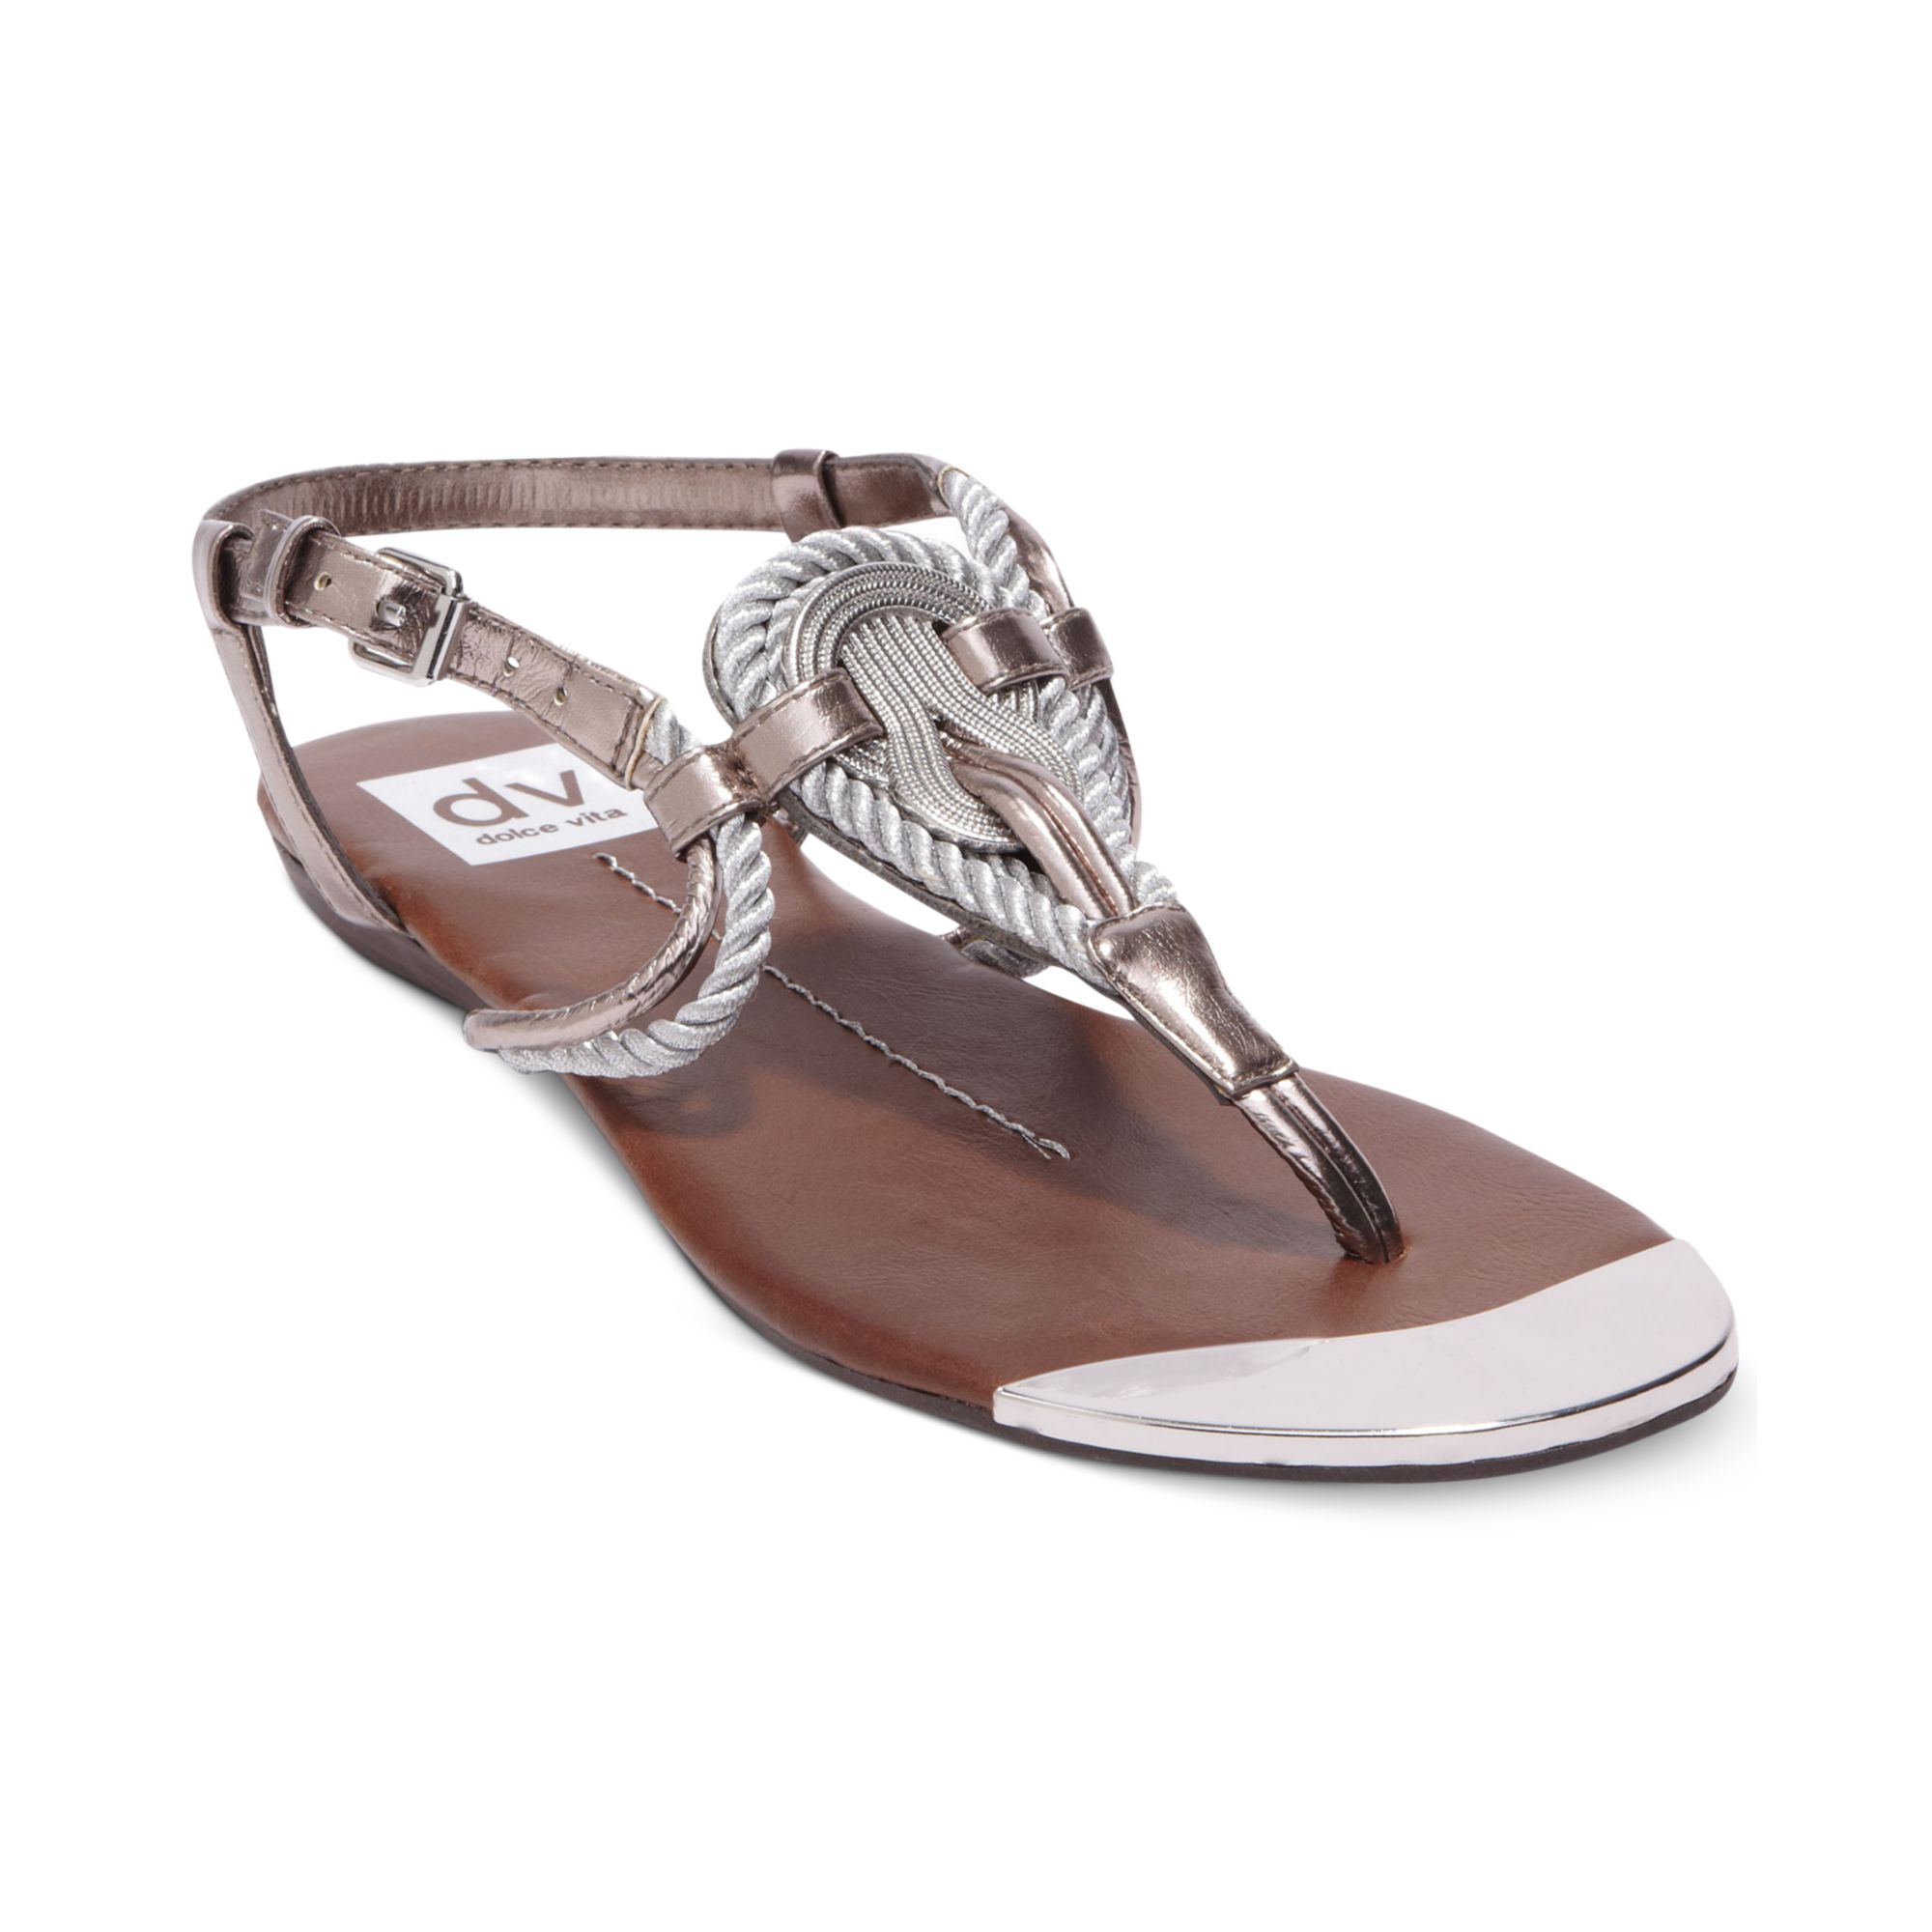 c9ab67d9e Dolce Vita Dv By Anica Flat Thong Sandals in Metallic - Lyst